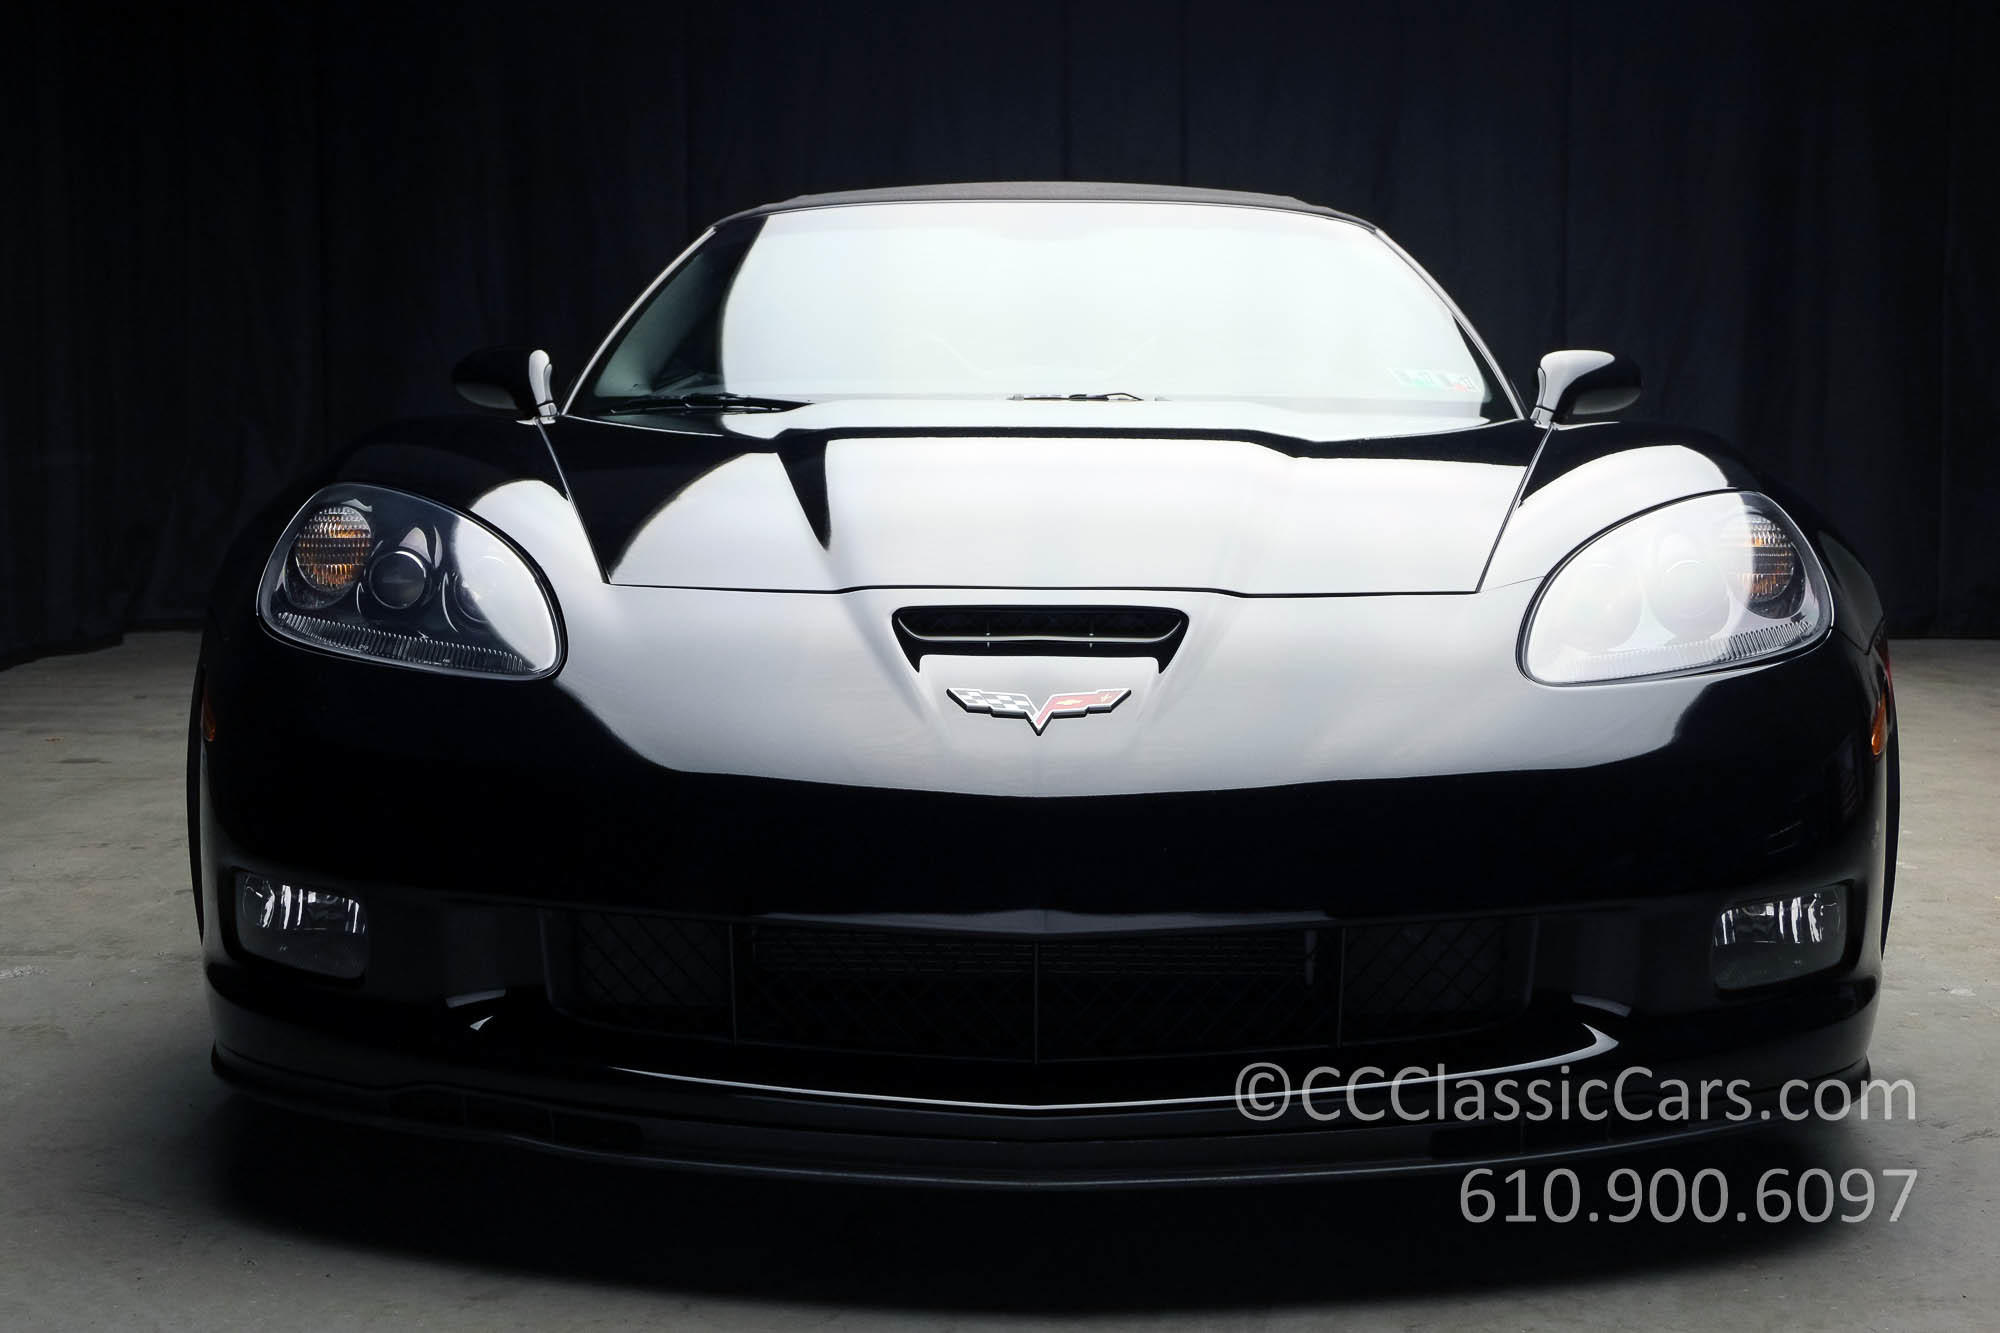 19006 3689a44989272010blackcorvetteconvertiblegrandsport6